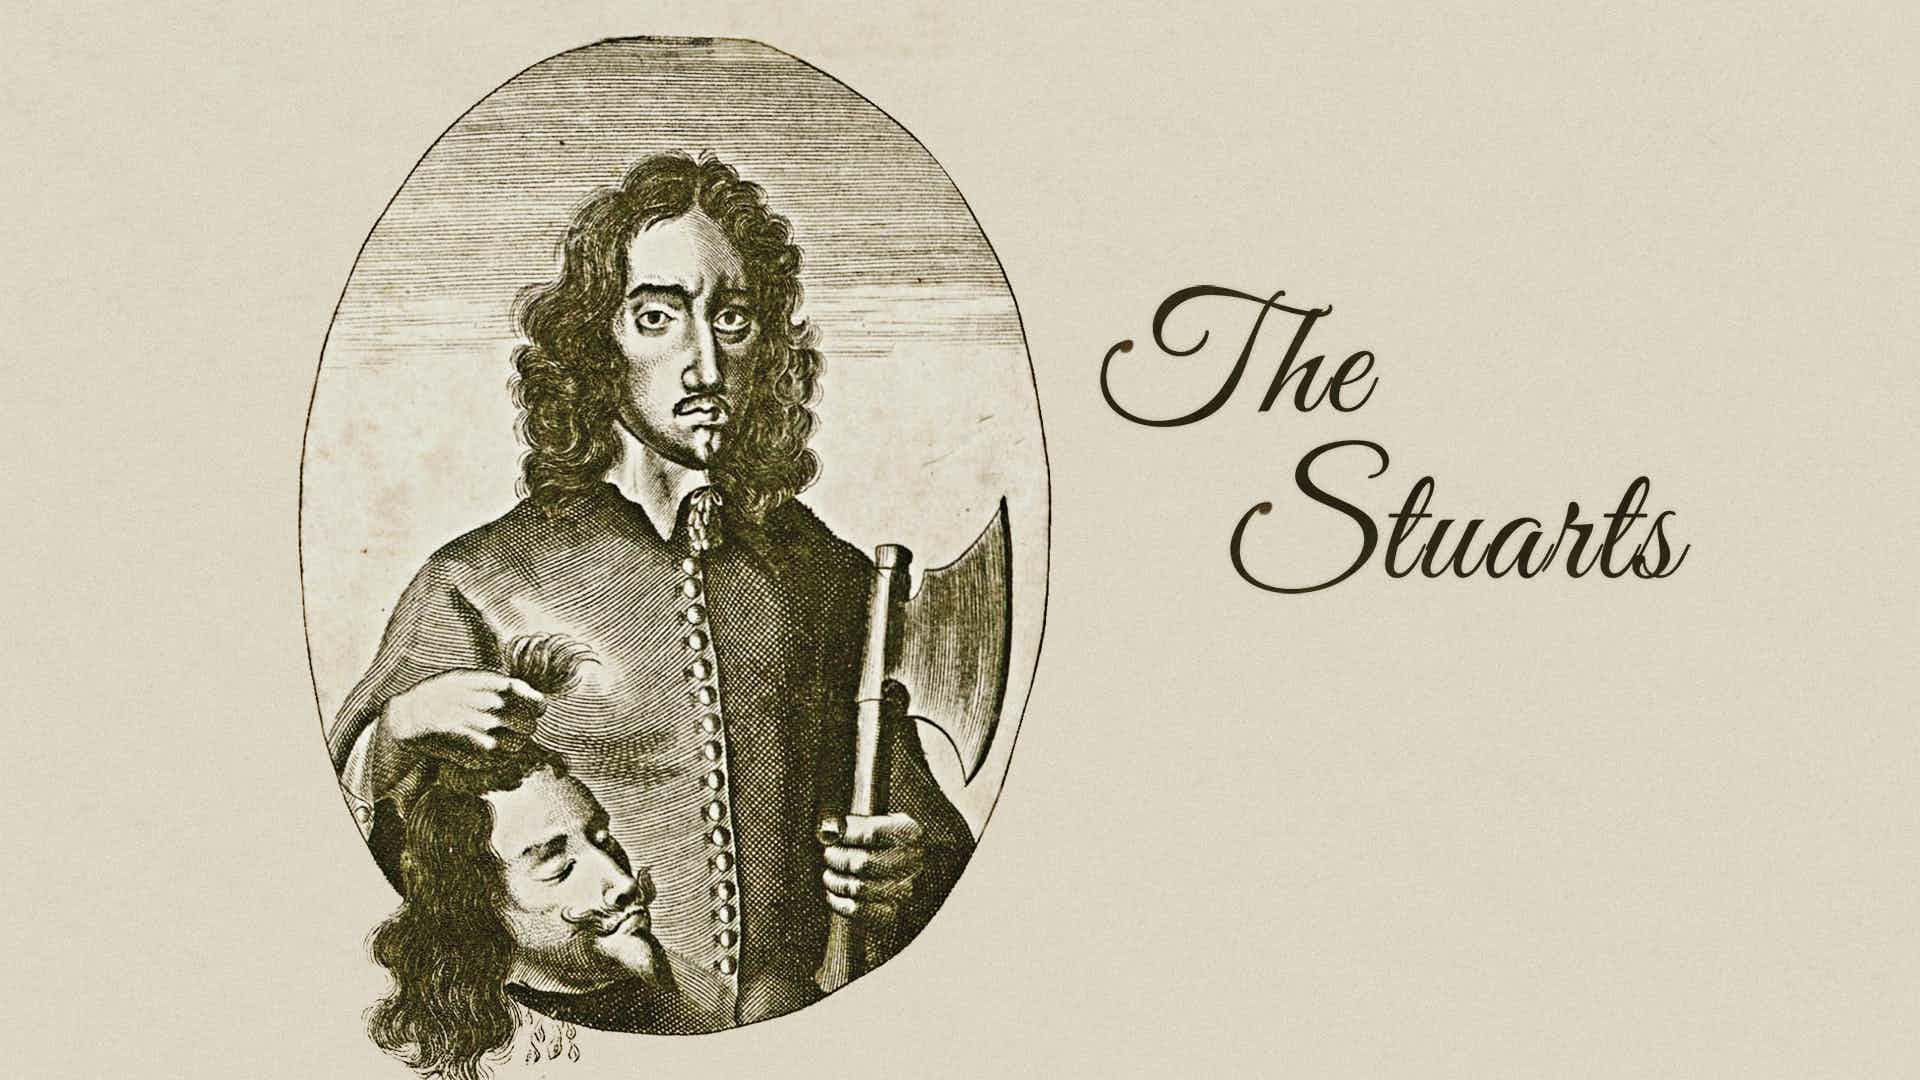 The Kings and Queens of England: The Stuarts